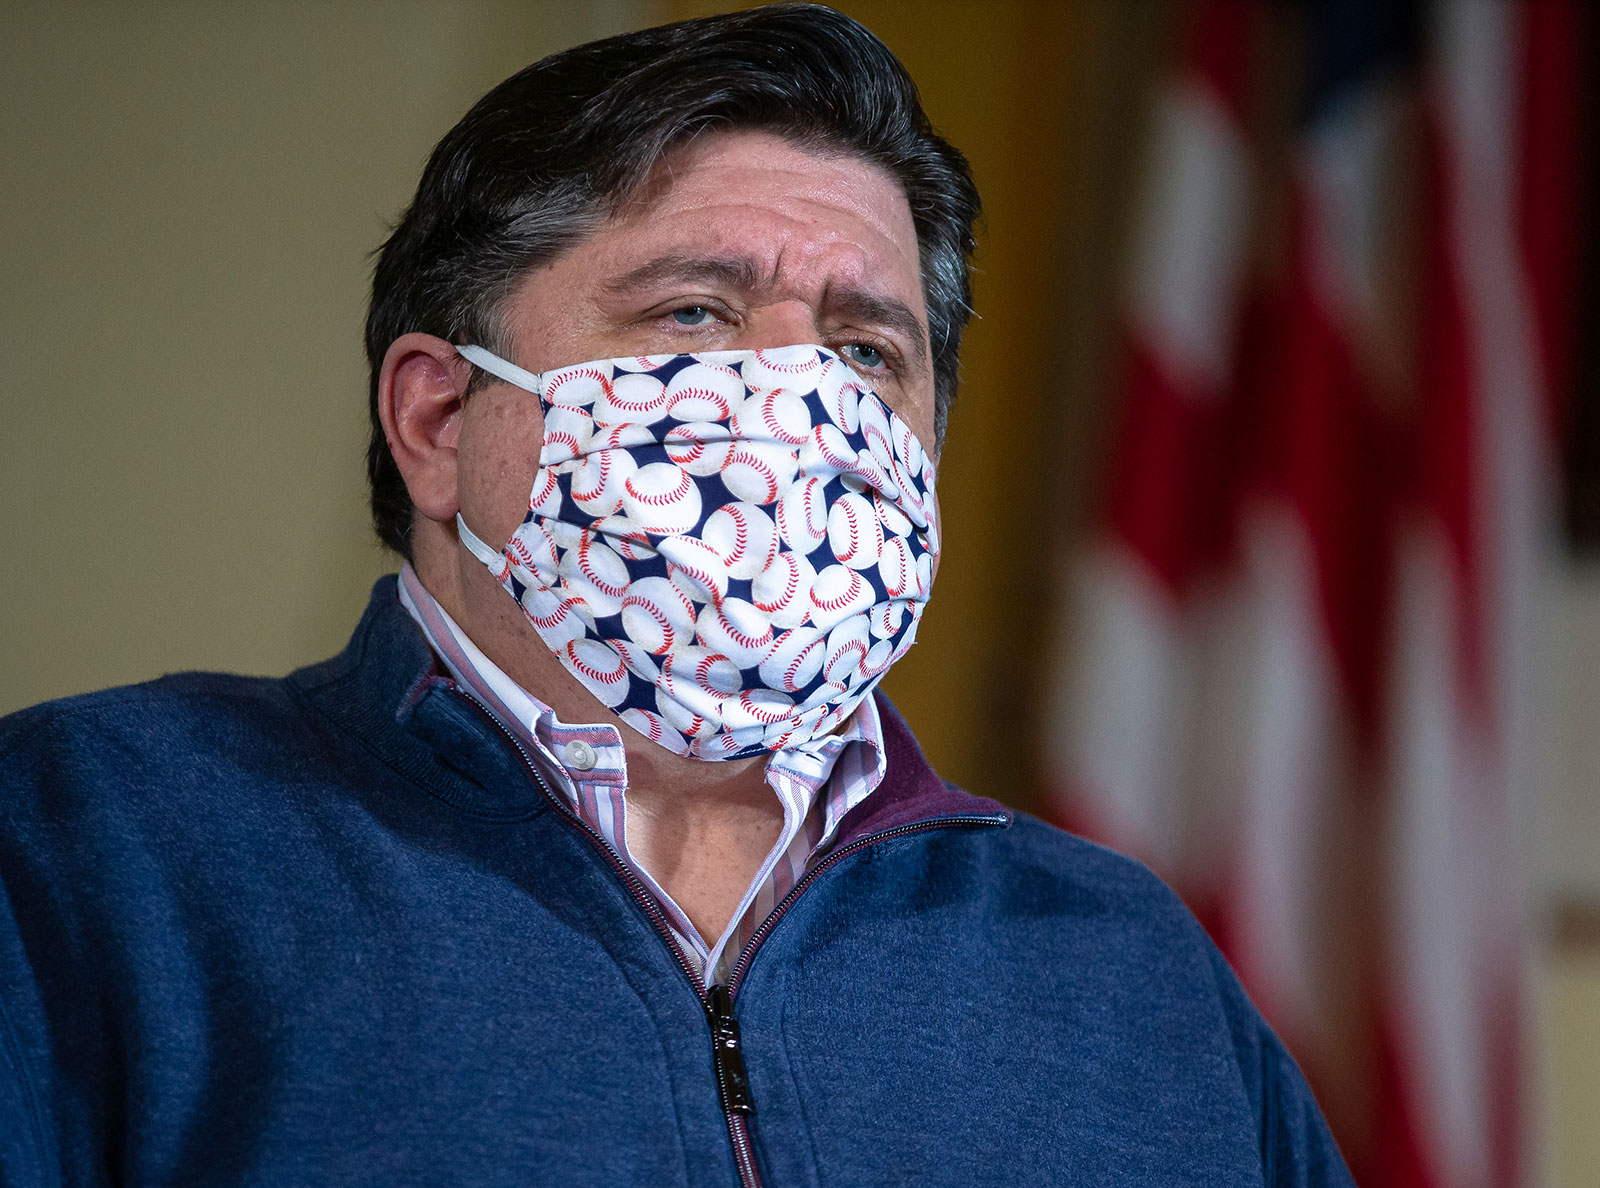 Illinois Gov. J.B. Prtizker wears a mask during a press briefing on May 21.